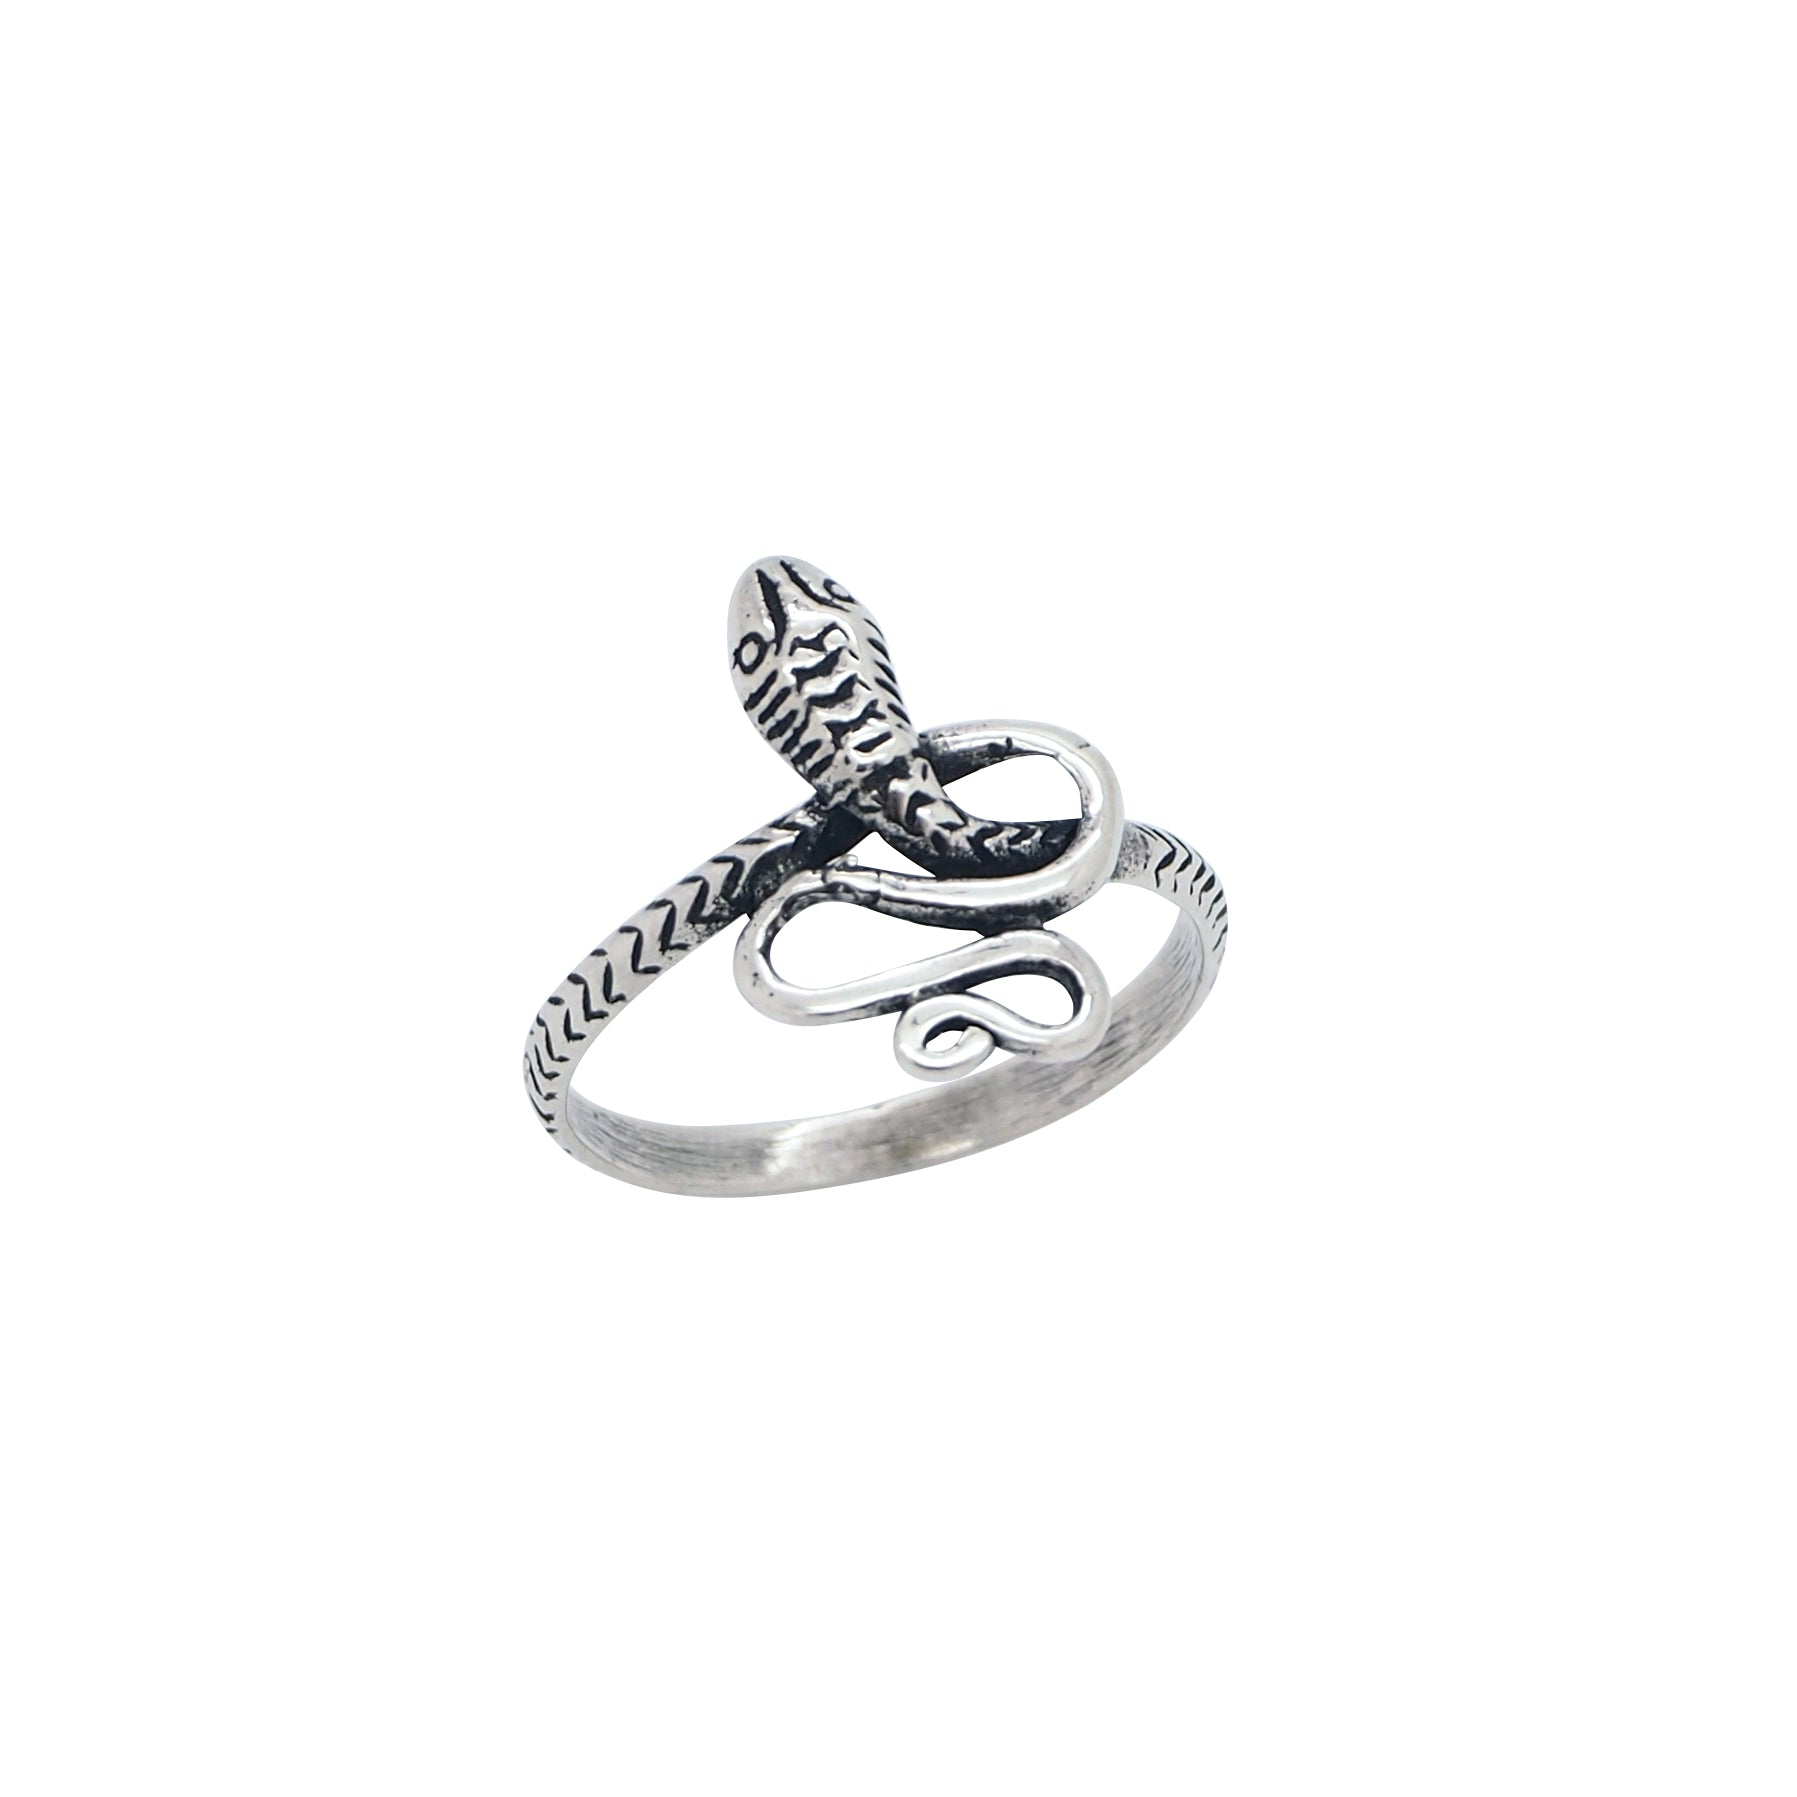 Sterling Silver Serpentina Ring